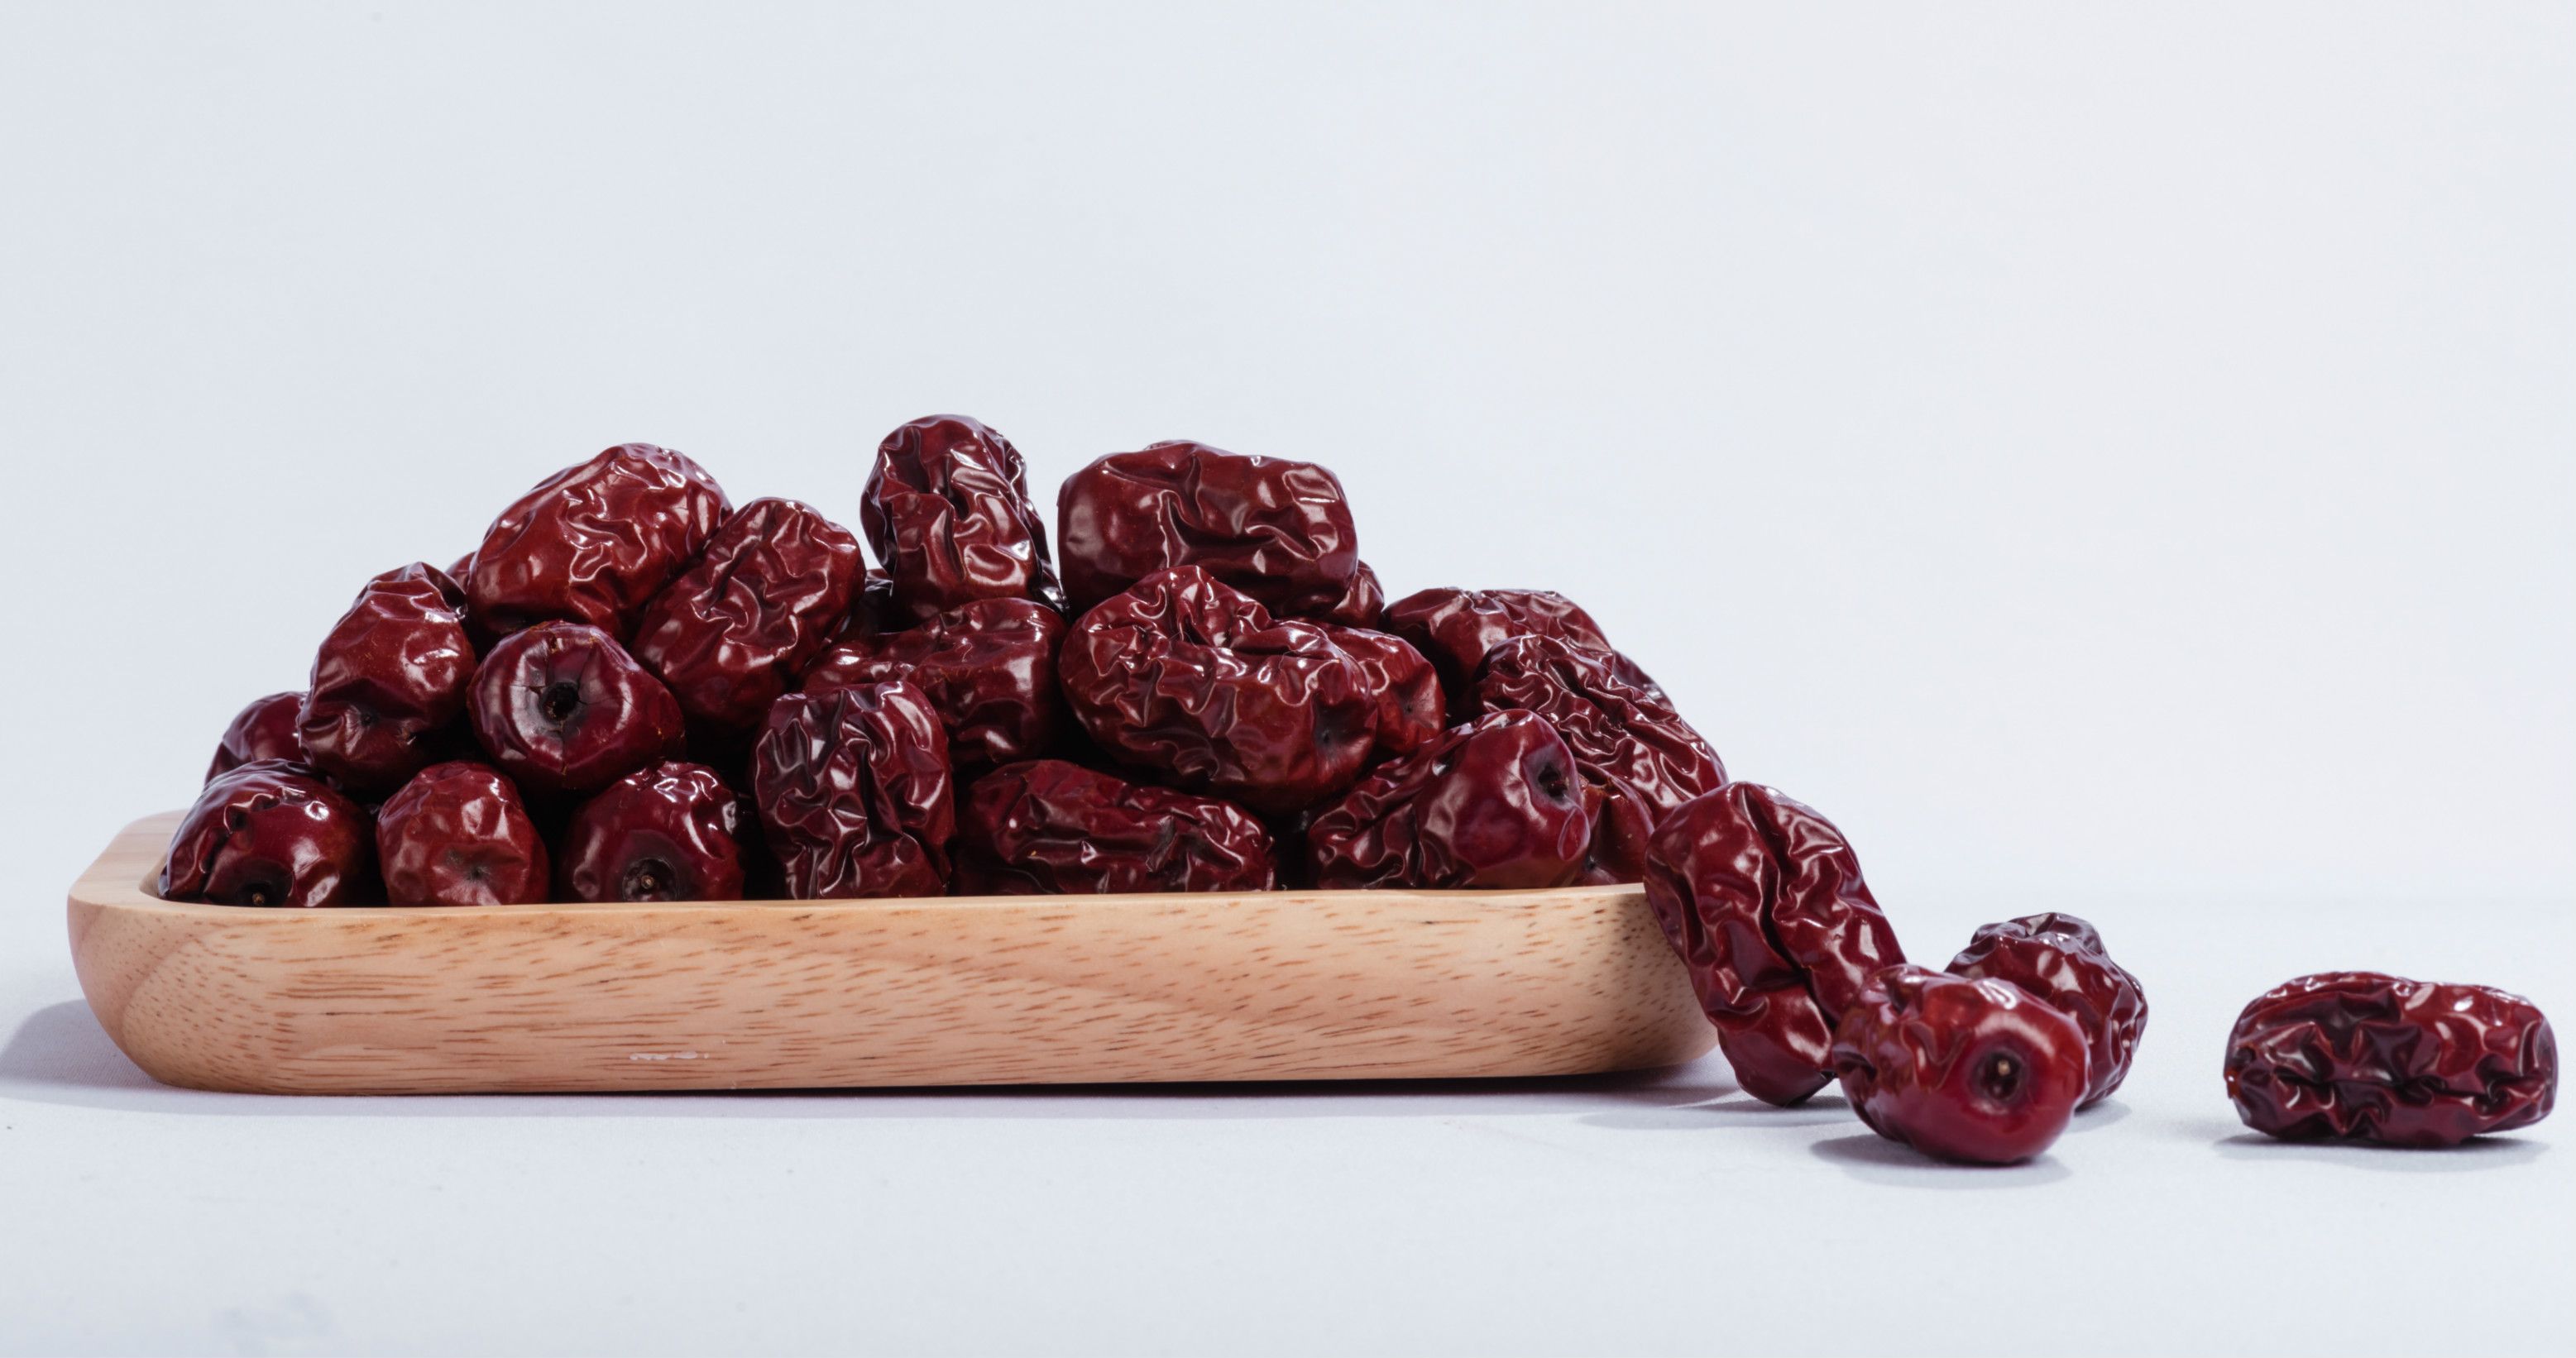 What is the difference between organic red dates and ordinary red dates?